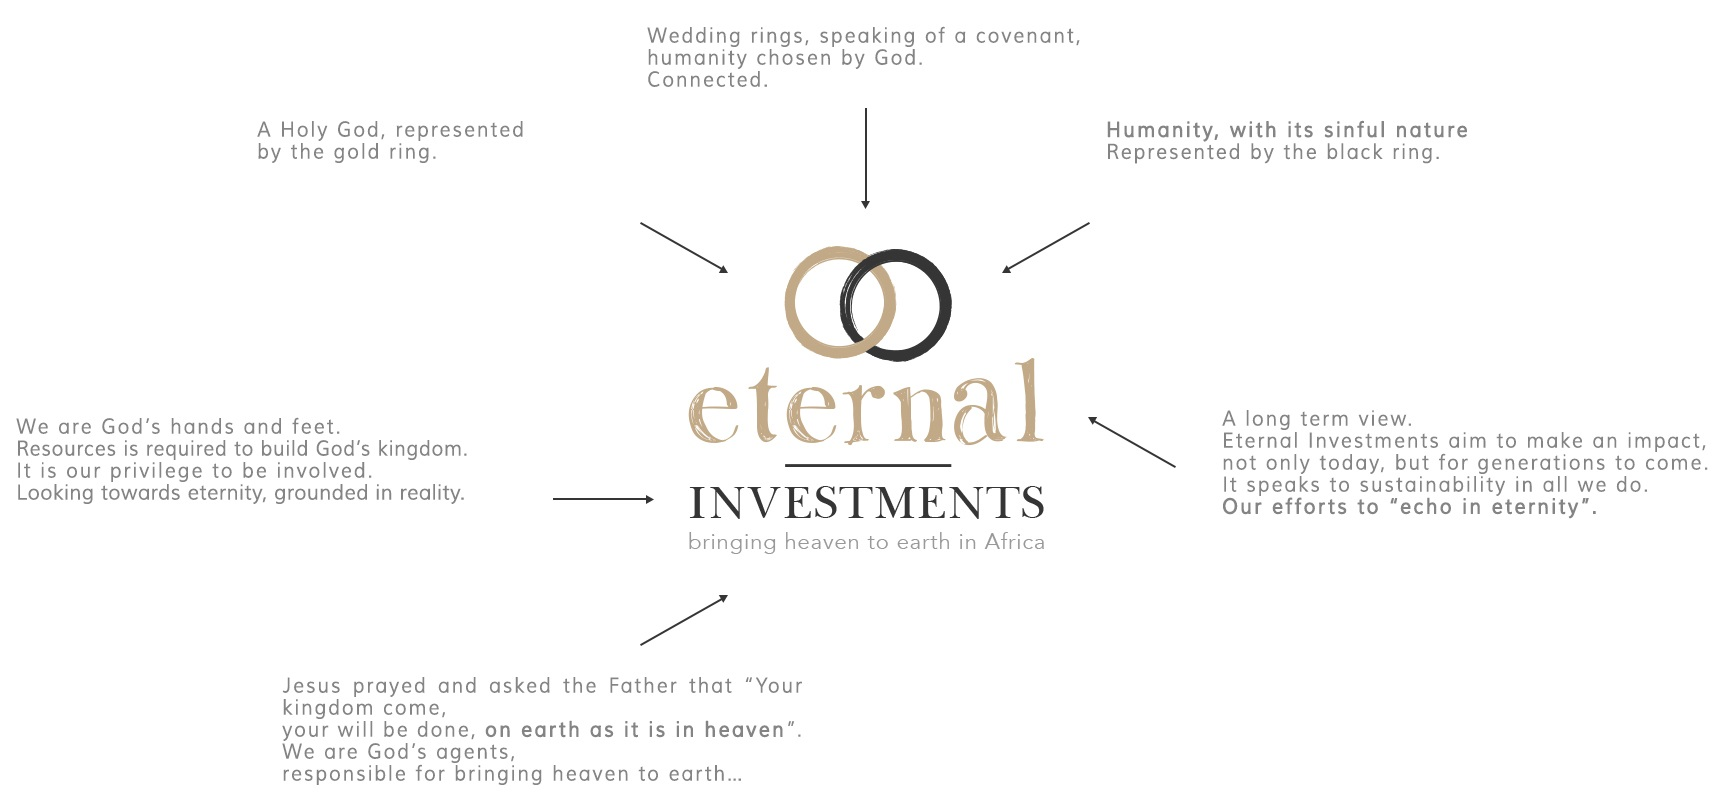 eternal-investments-logo-description.jpg